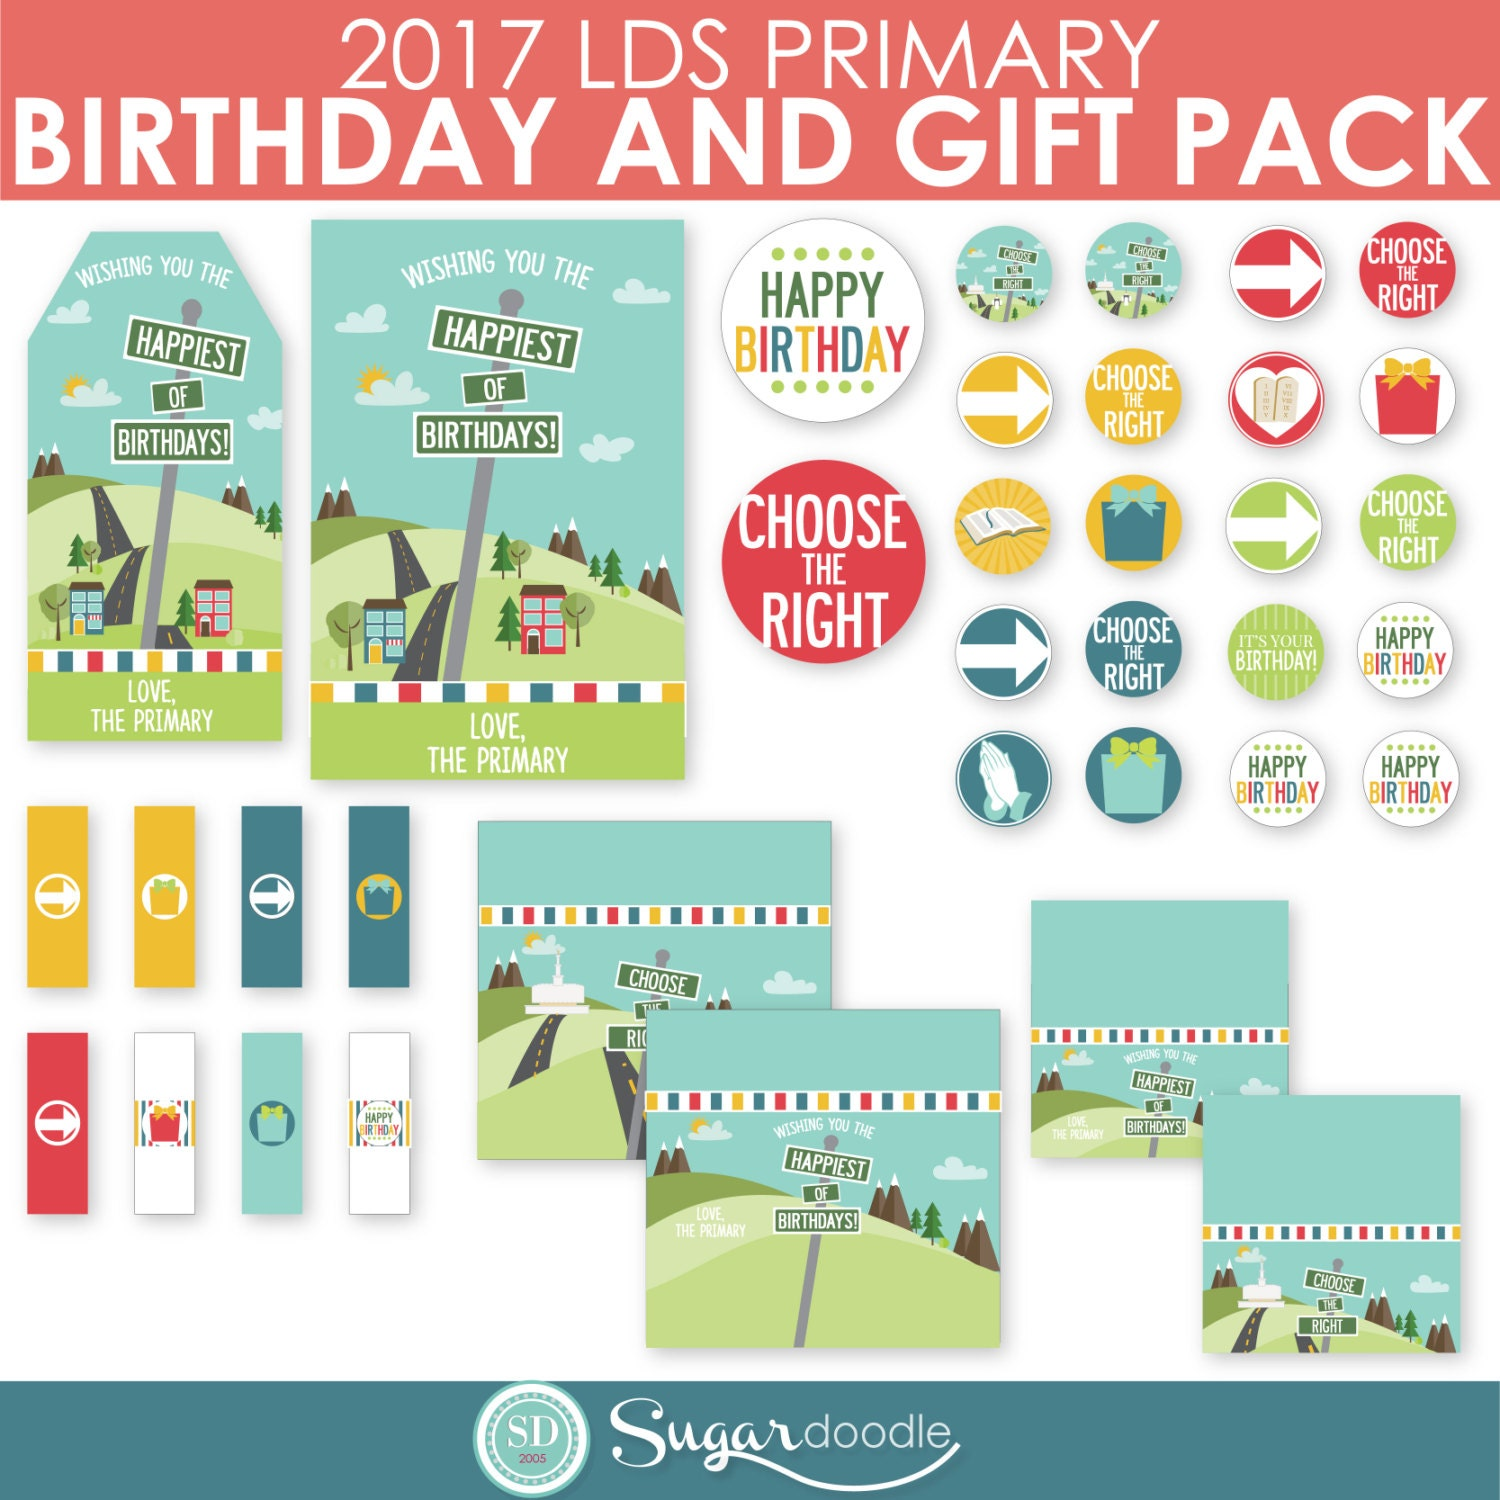 2017 LDS Primary Birthday and Gift kit Choose the Right